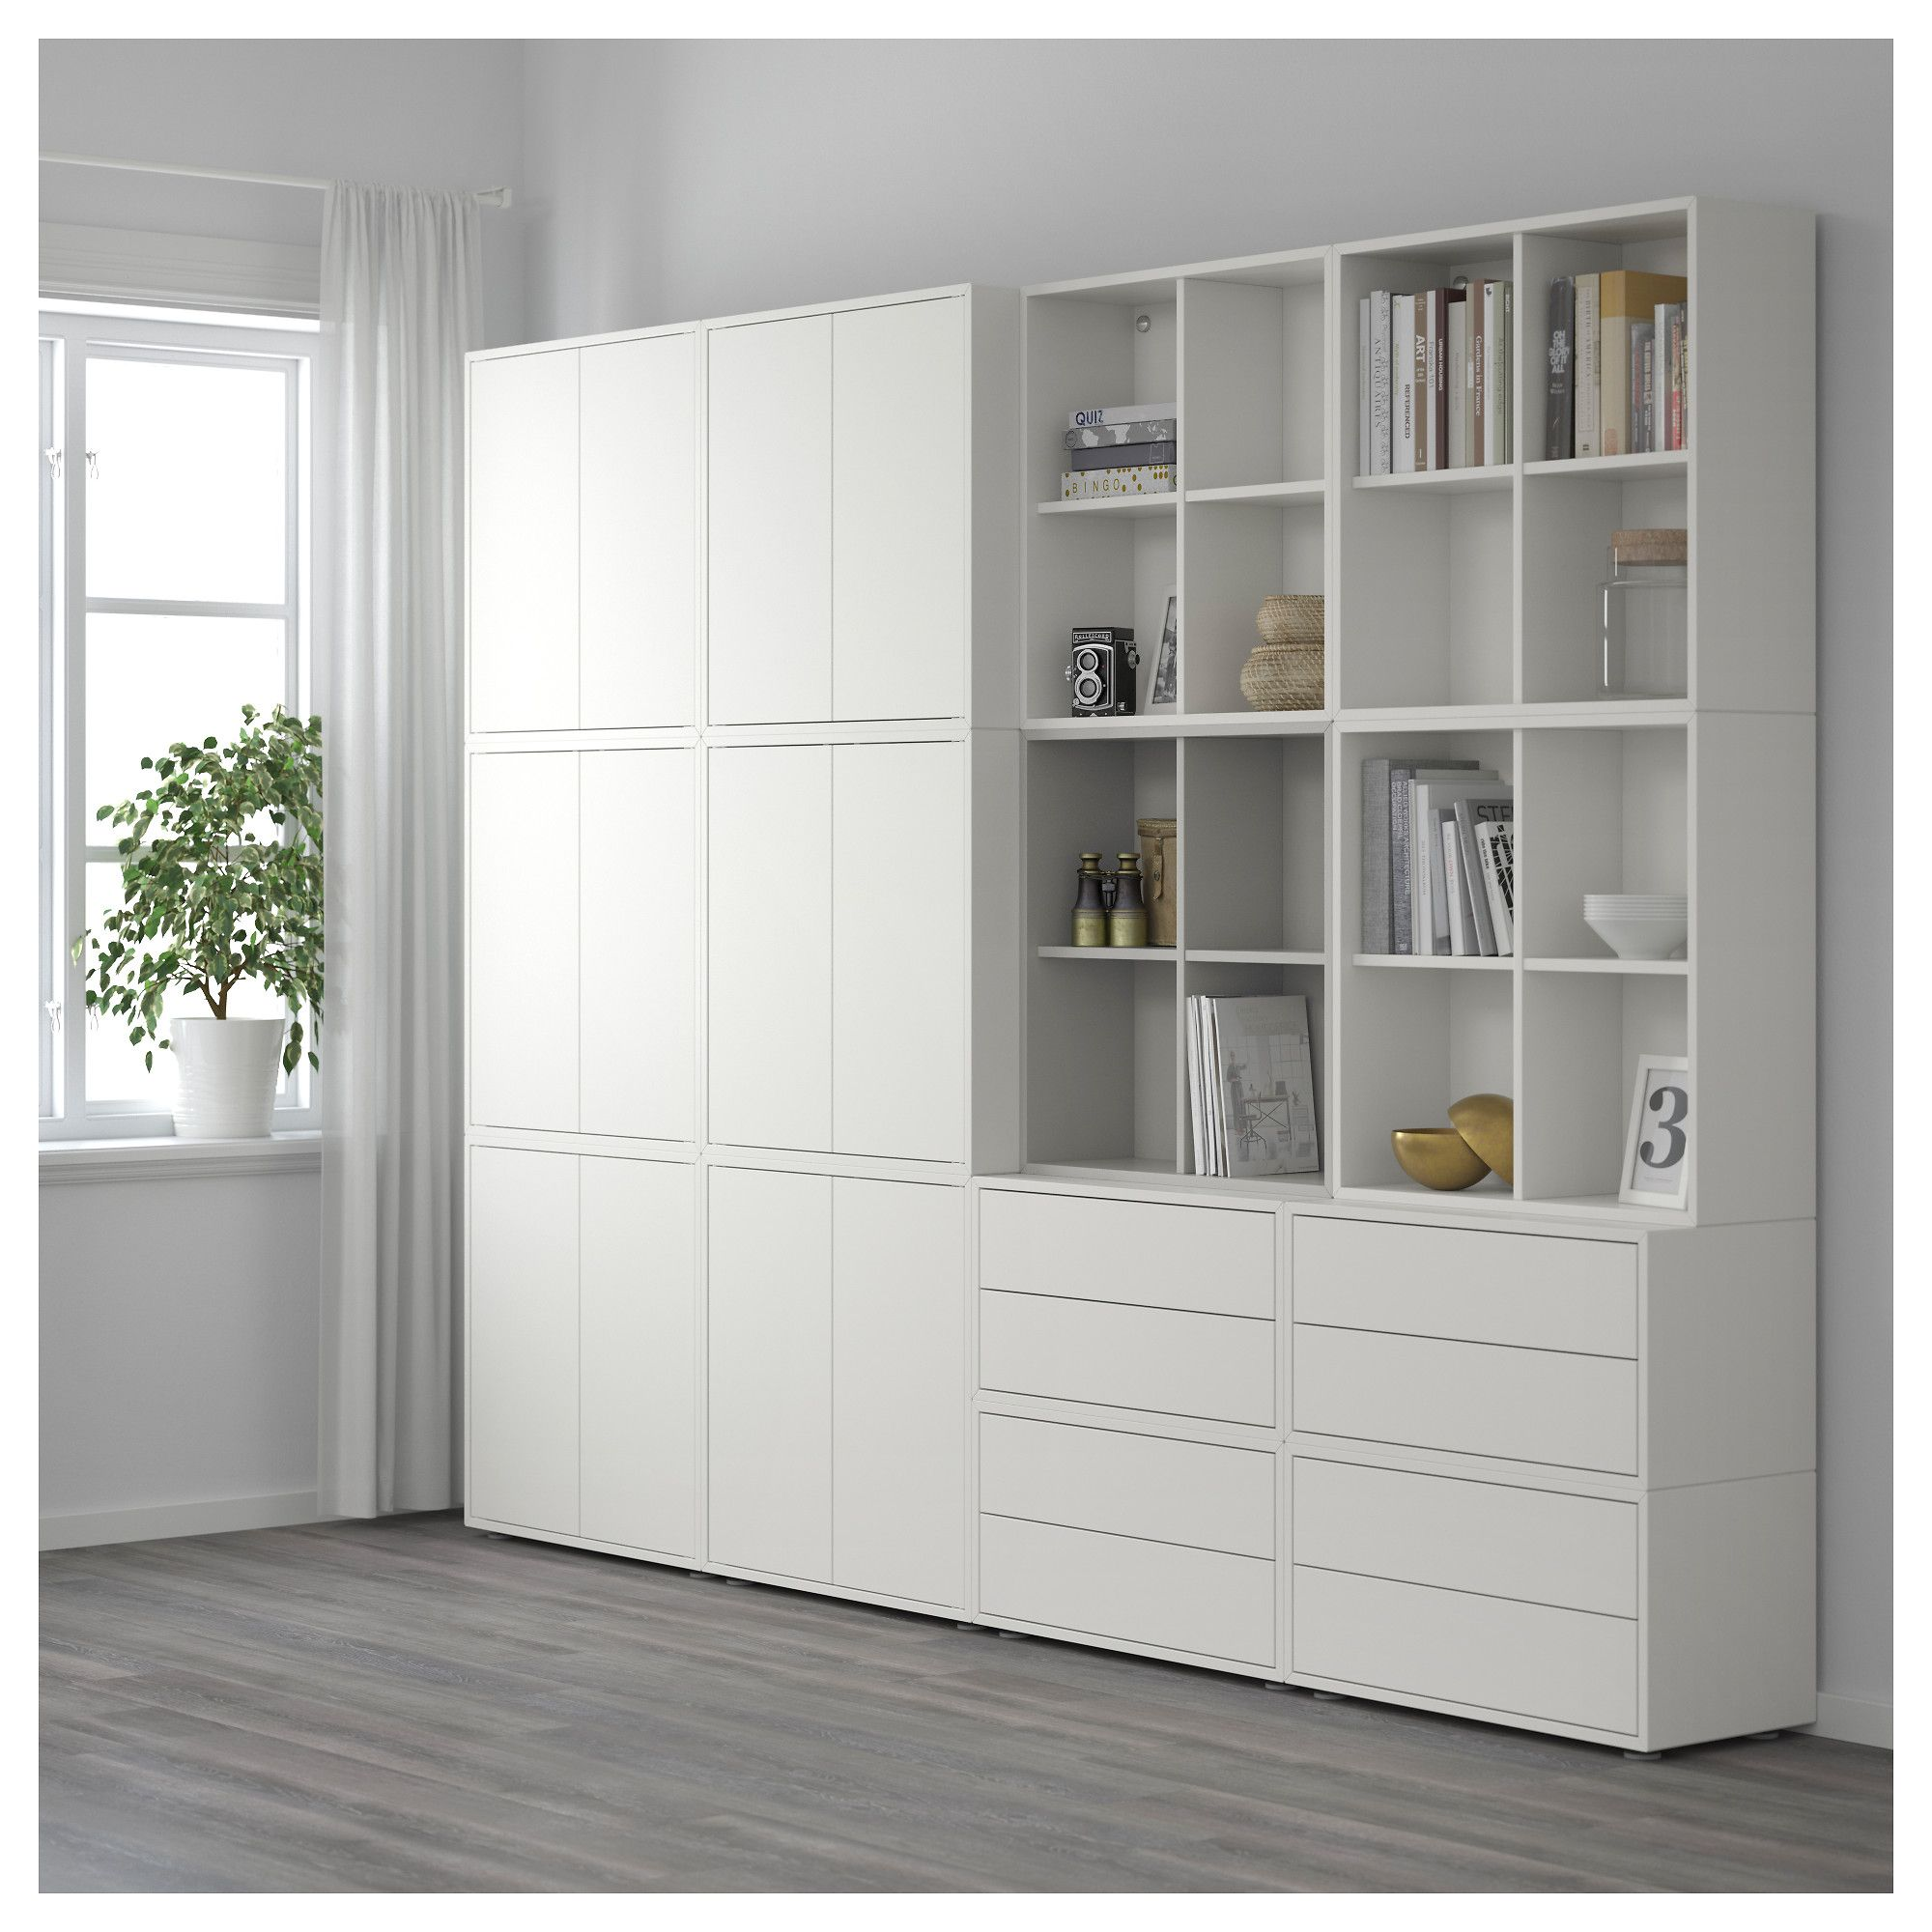 Furniture & Home Furnishings - Find Your Inspiration  Eket, White